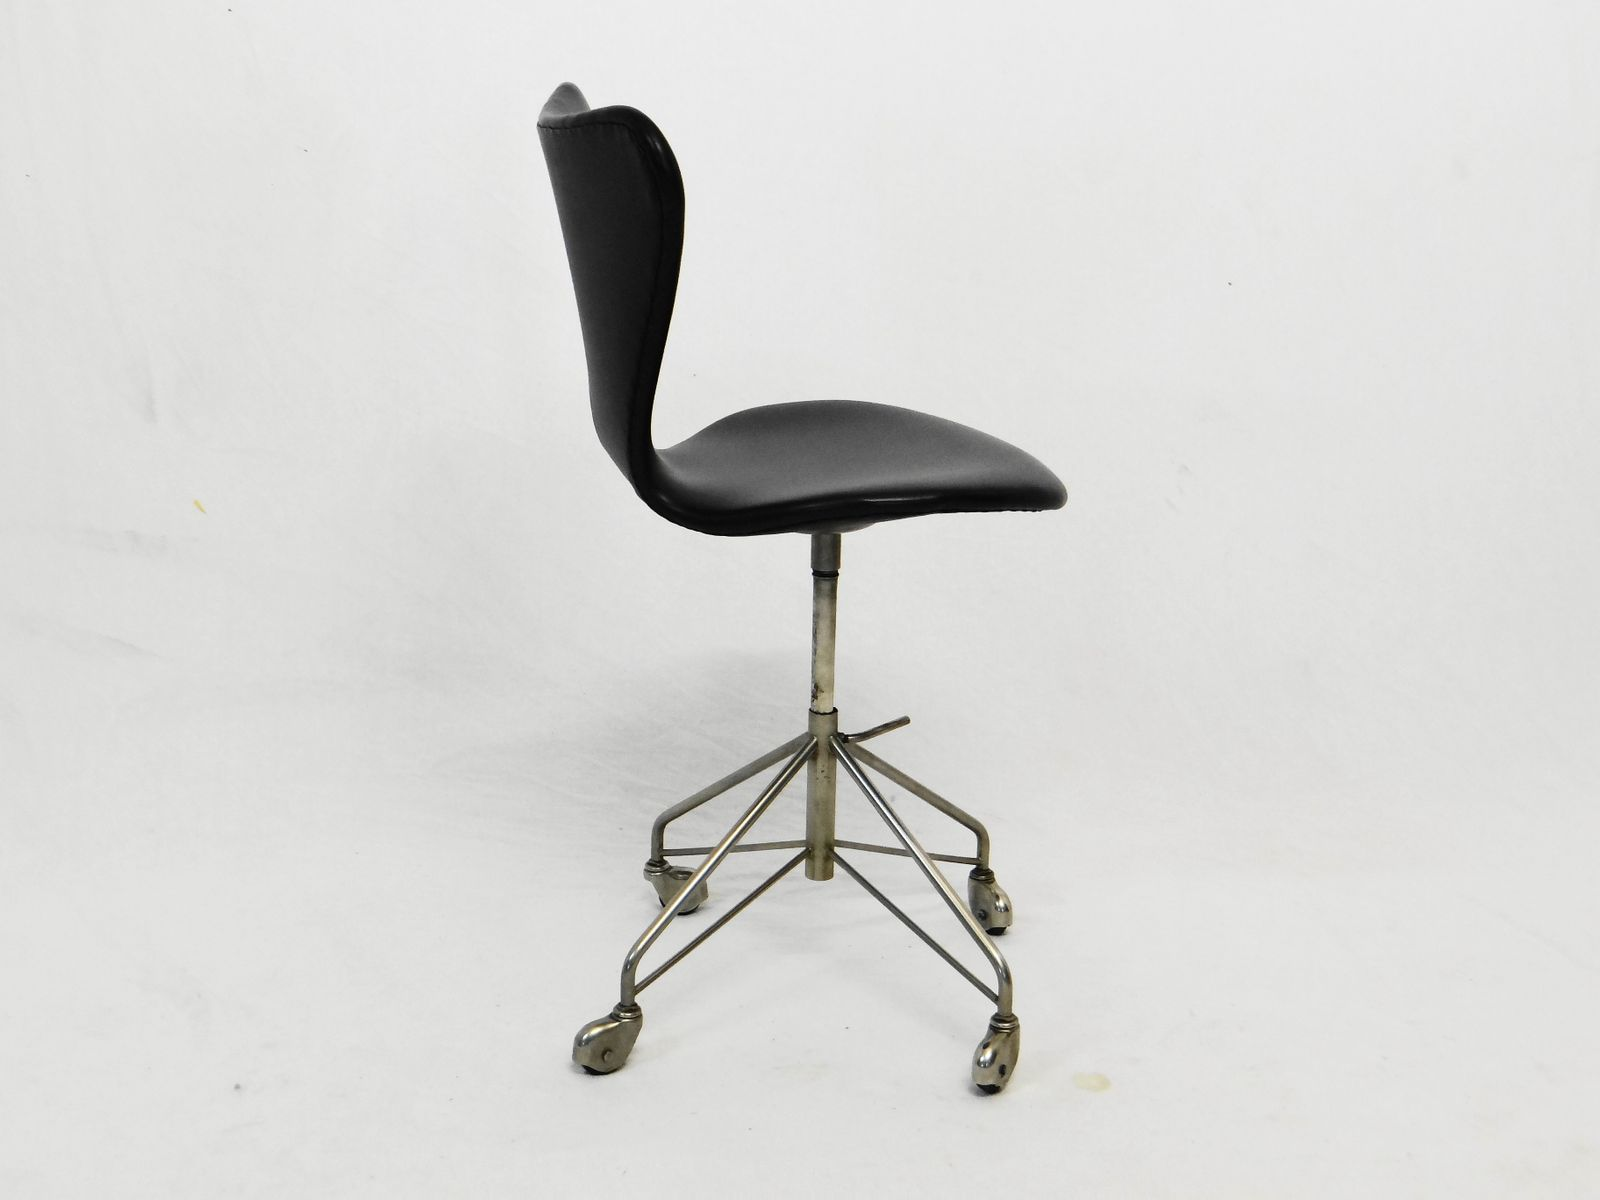 vintage series 7 swivel chair by arne jacobsen for fritz hansen for sale at pamono. Black Bedroom Furniture Sets. Home Design Ideas